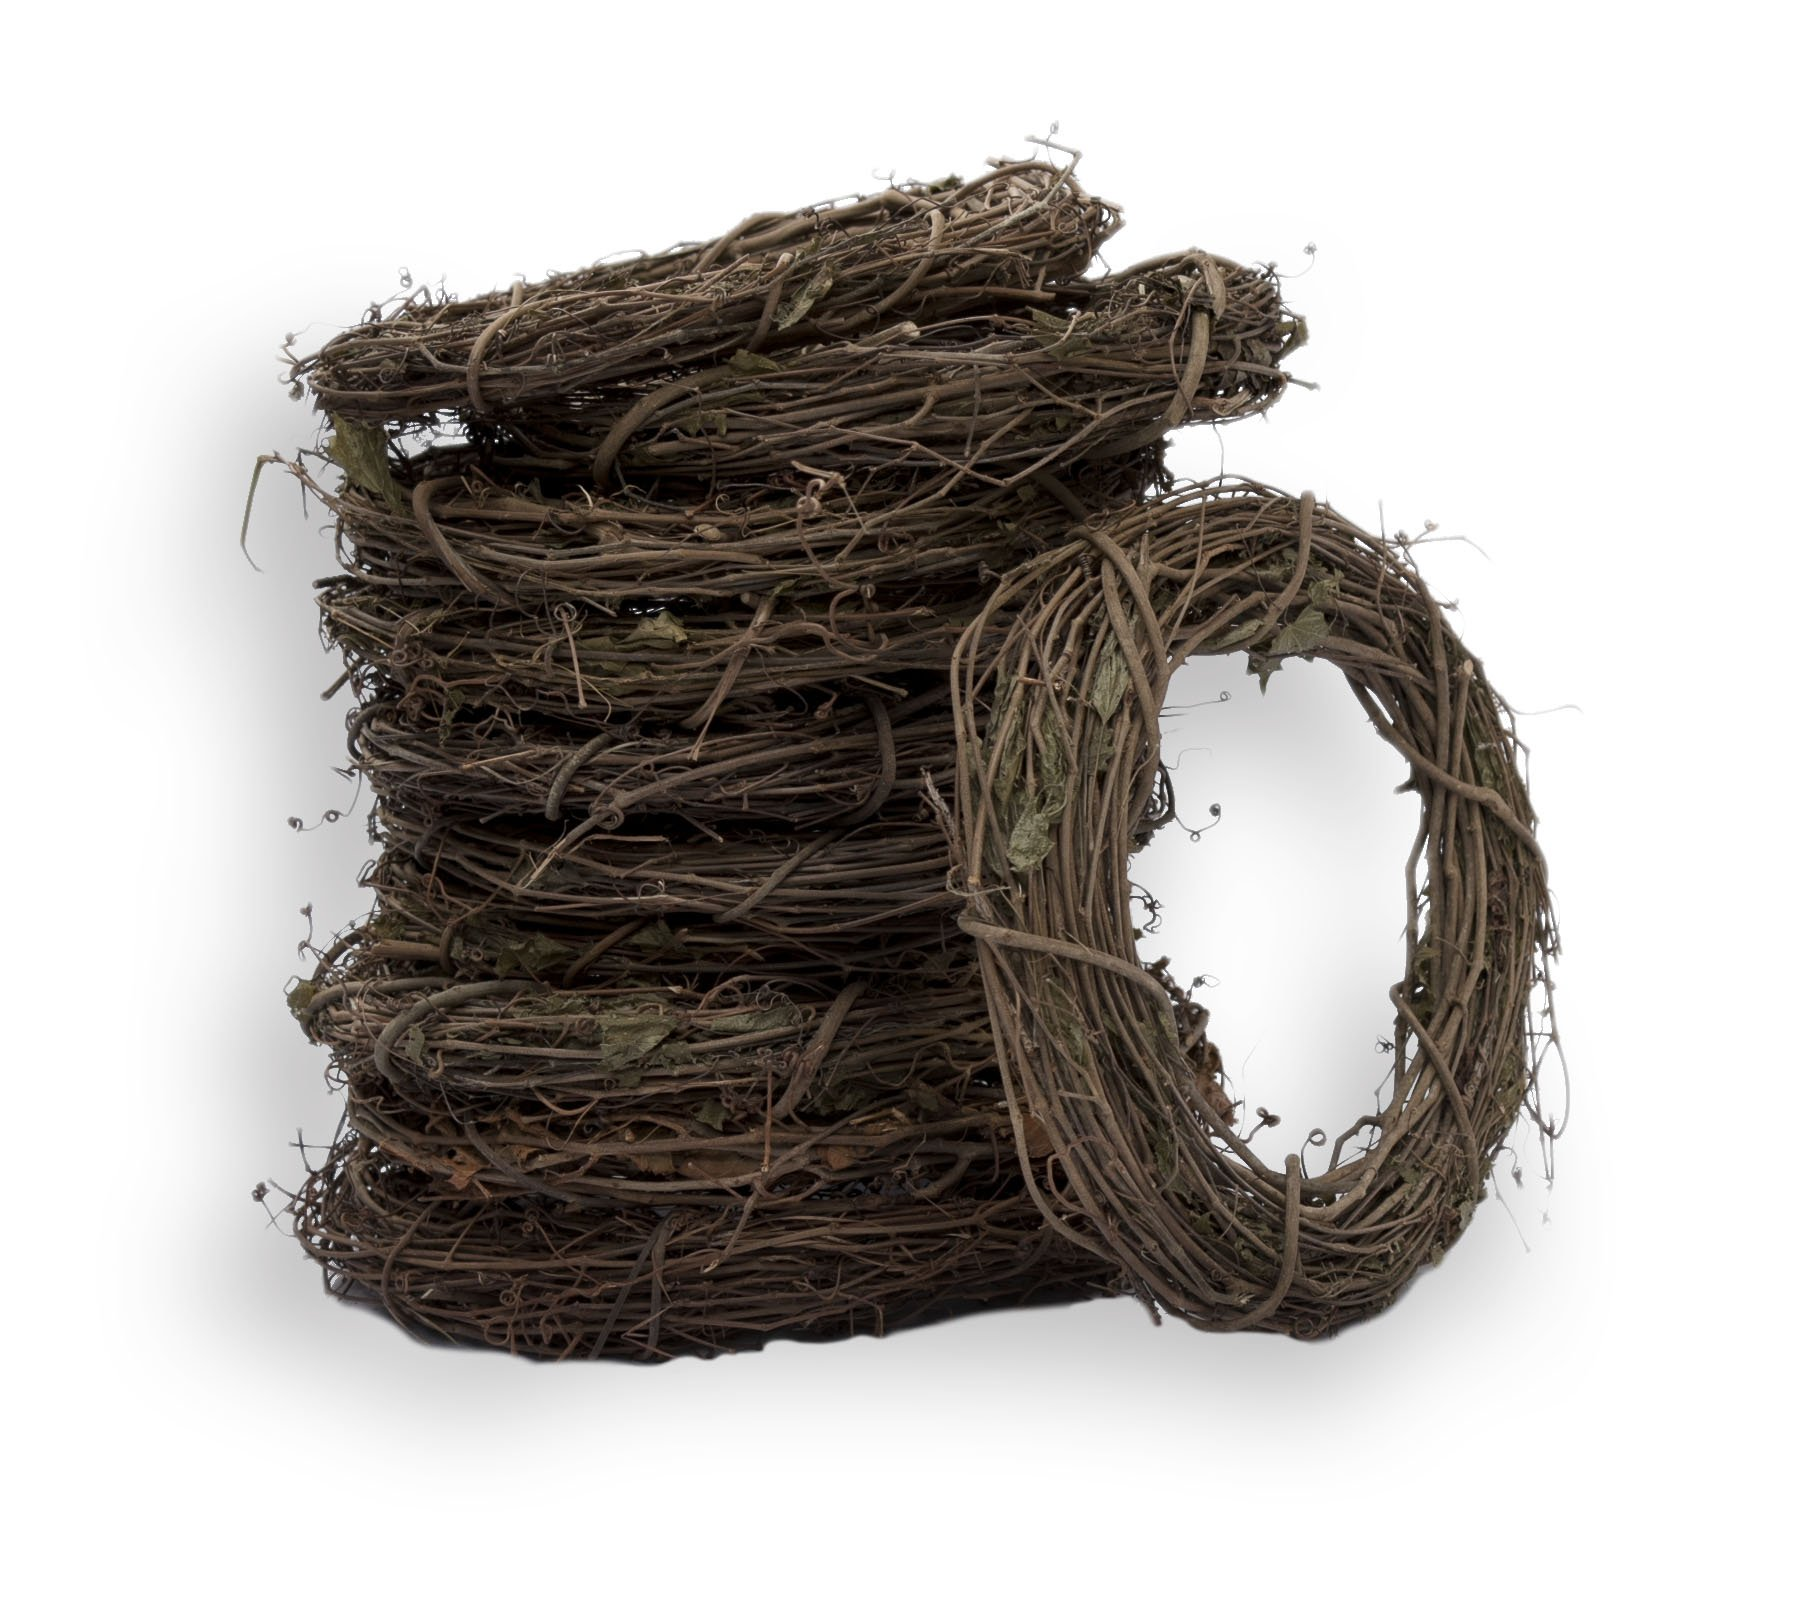 Furrow & Vine - 14'' Natural Grapevine Wreath Base (Pack of 10) - Handcrafted in the USA – DIY Crafting - Decorates any Door or Wall Inside or Outside